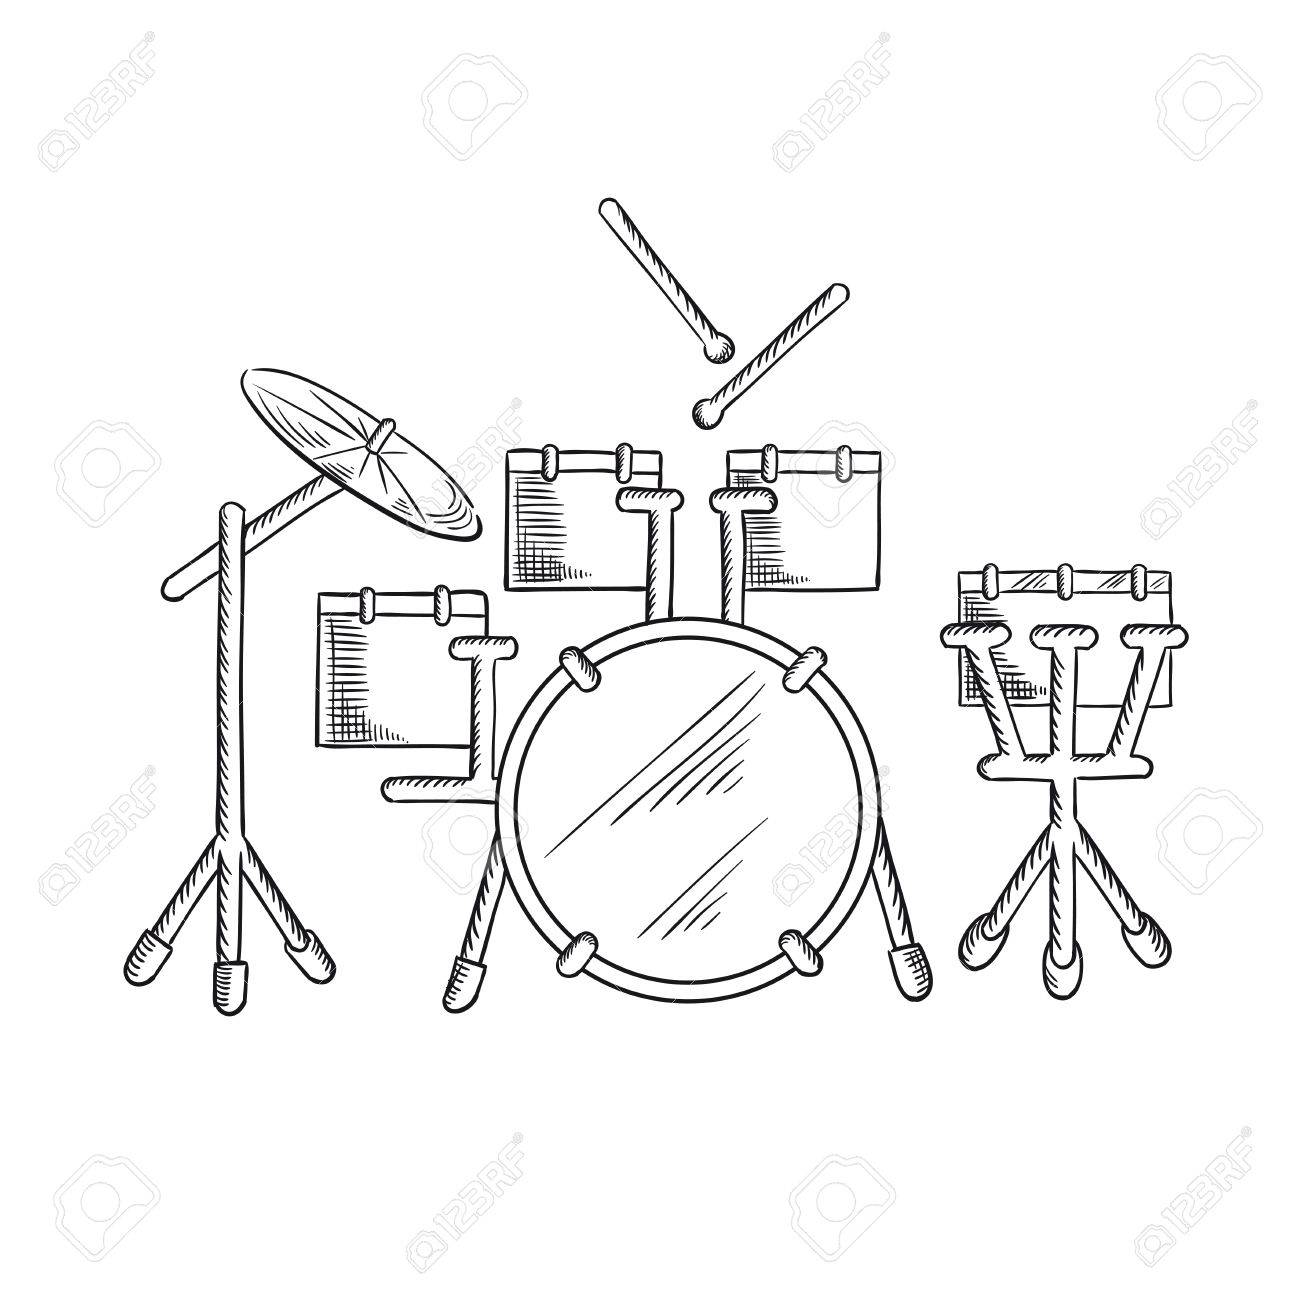 Drum Set Sketch With Traditional Kit Of Bass Two Hanging Toms Snare